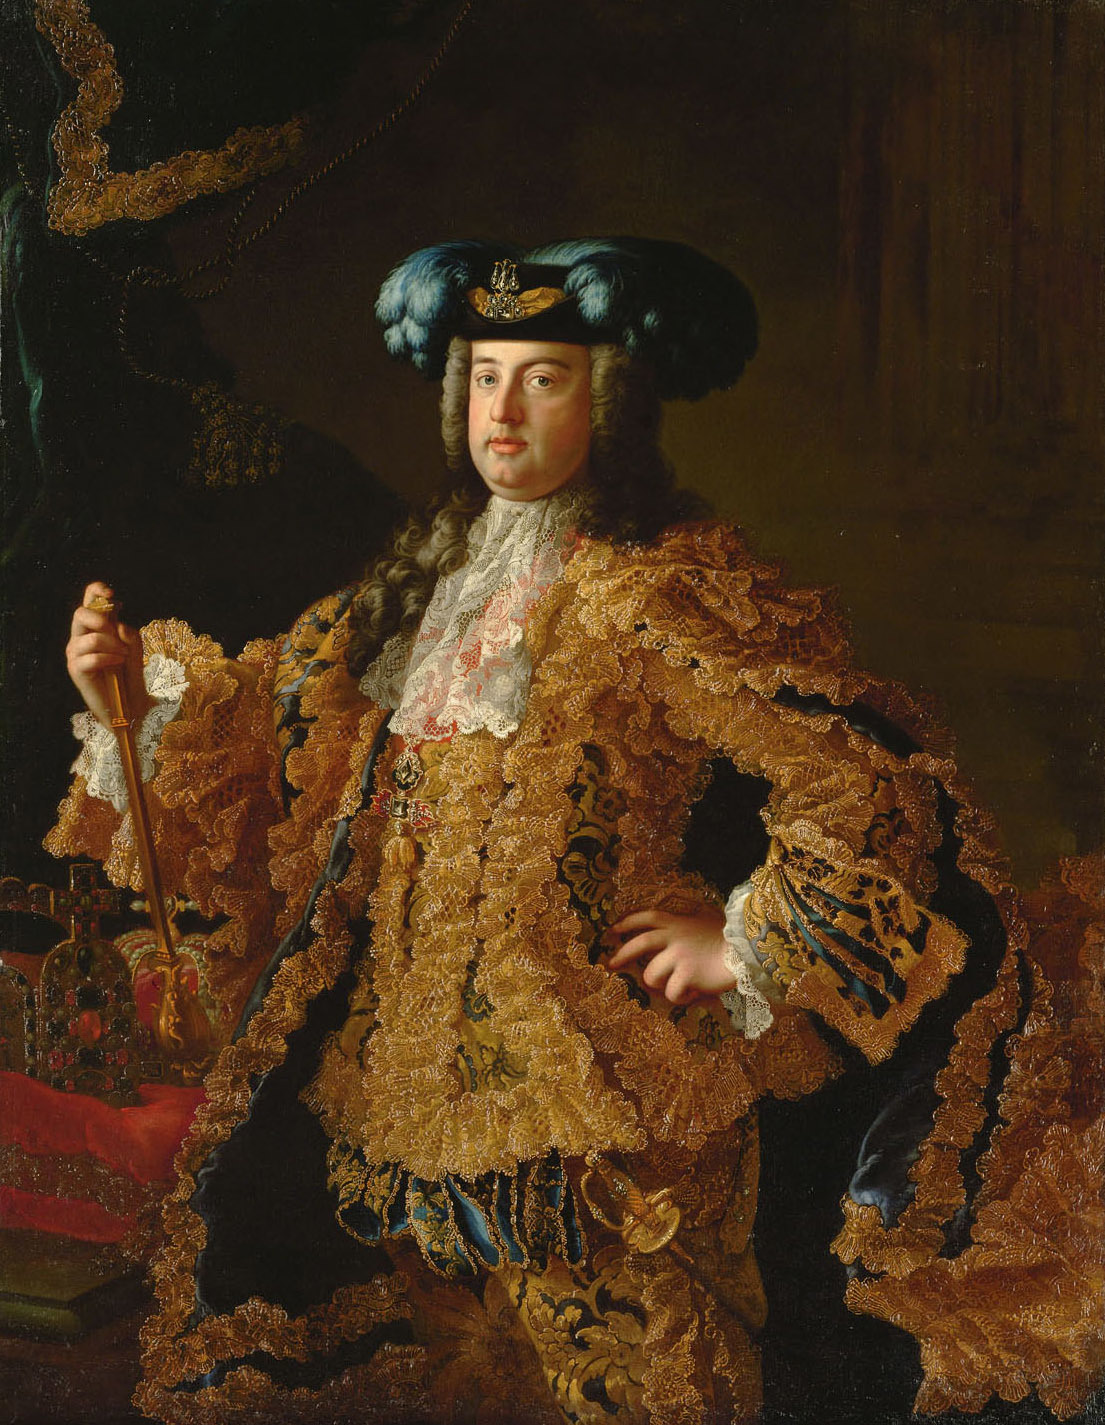 Francisco I, emperador